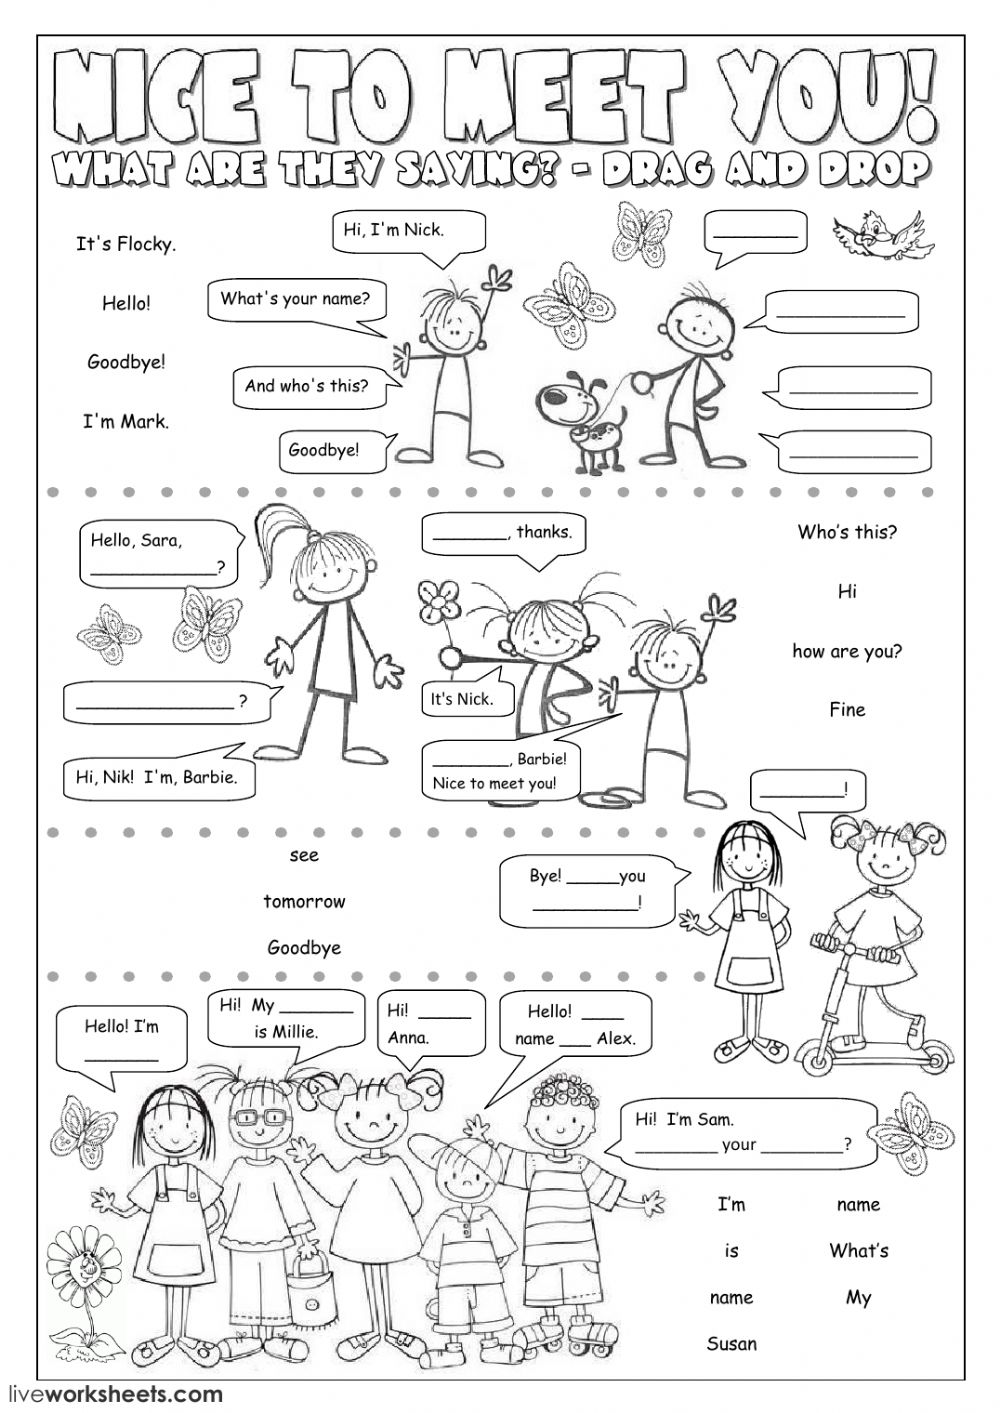 Nice to meet you! - Interactive worksheet